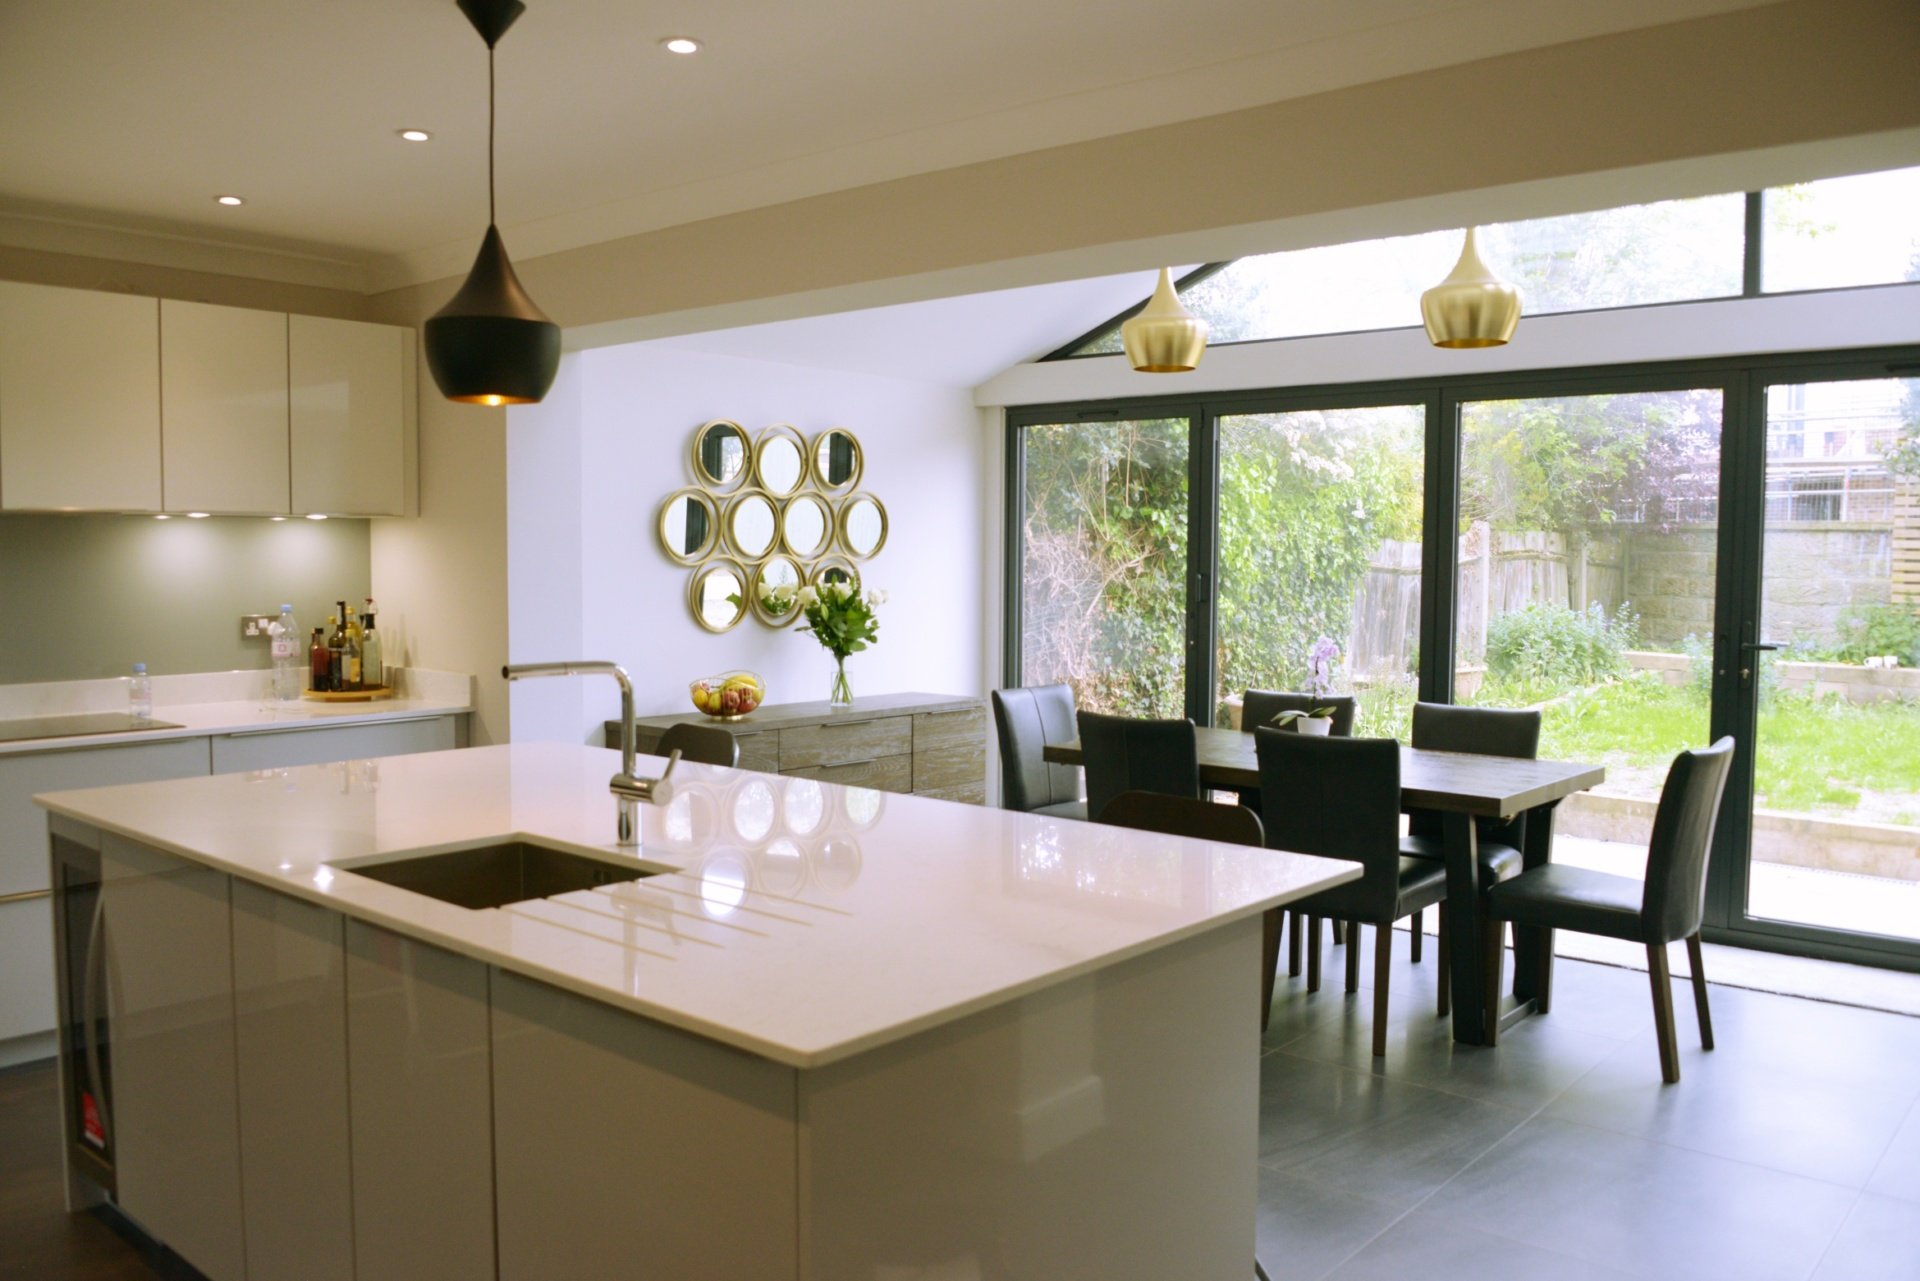 Architect designed roof and kitchen house extension Kingston KT2 Kitchen area Kingston KT2 | Roof and kitchen house extension